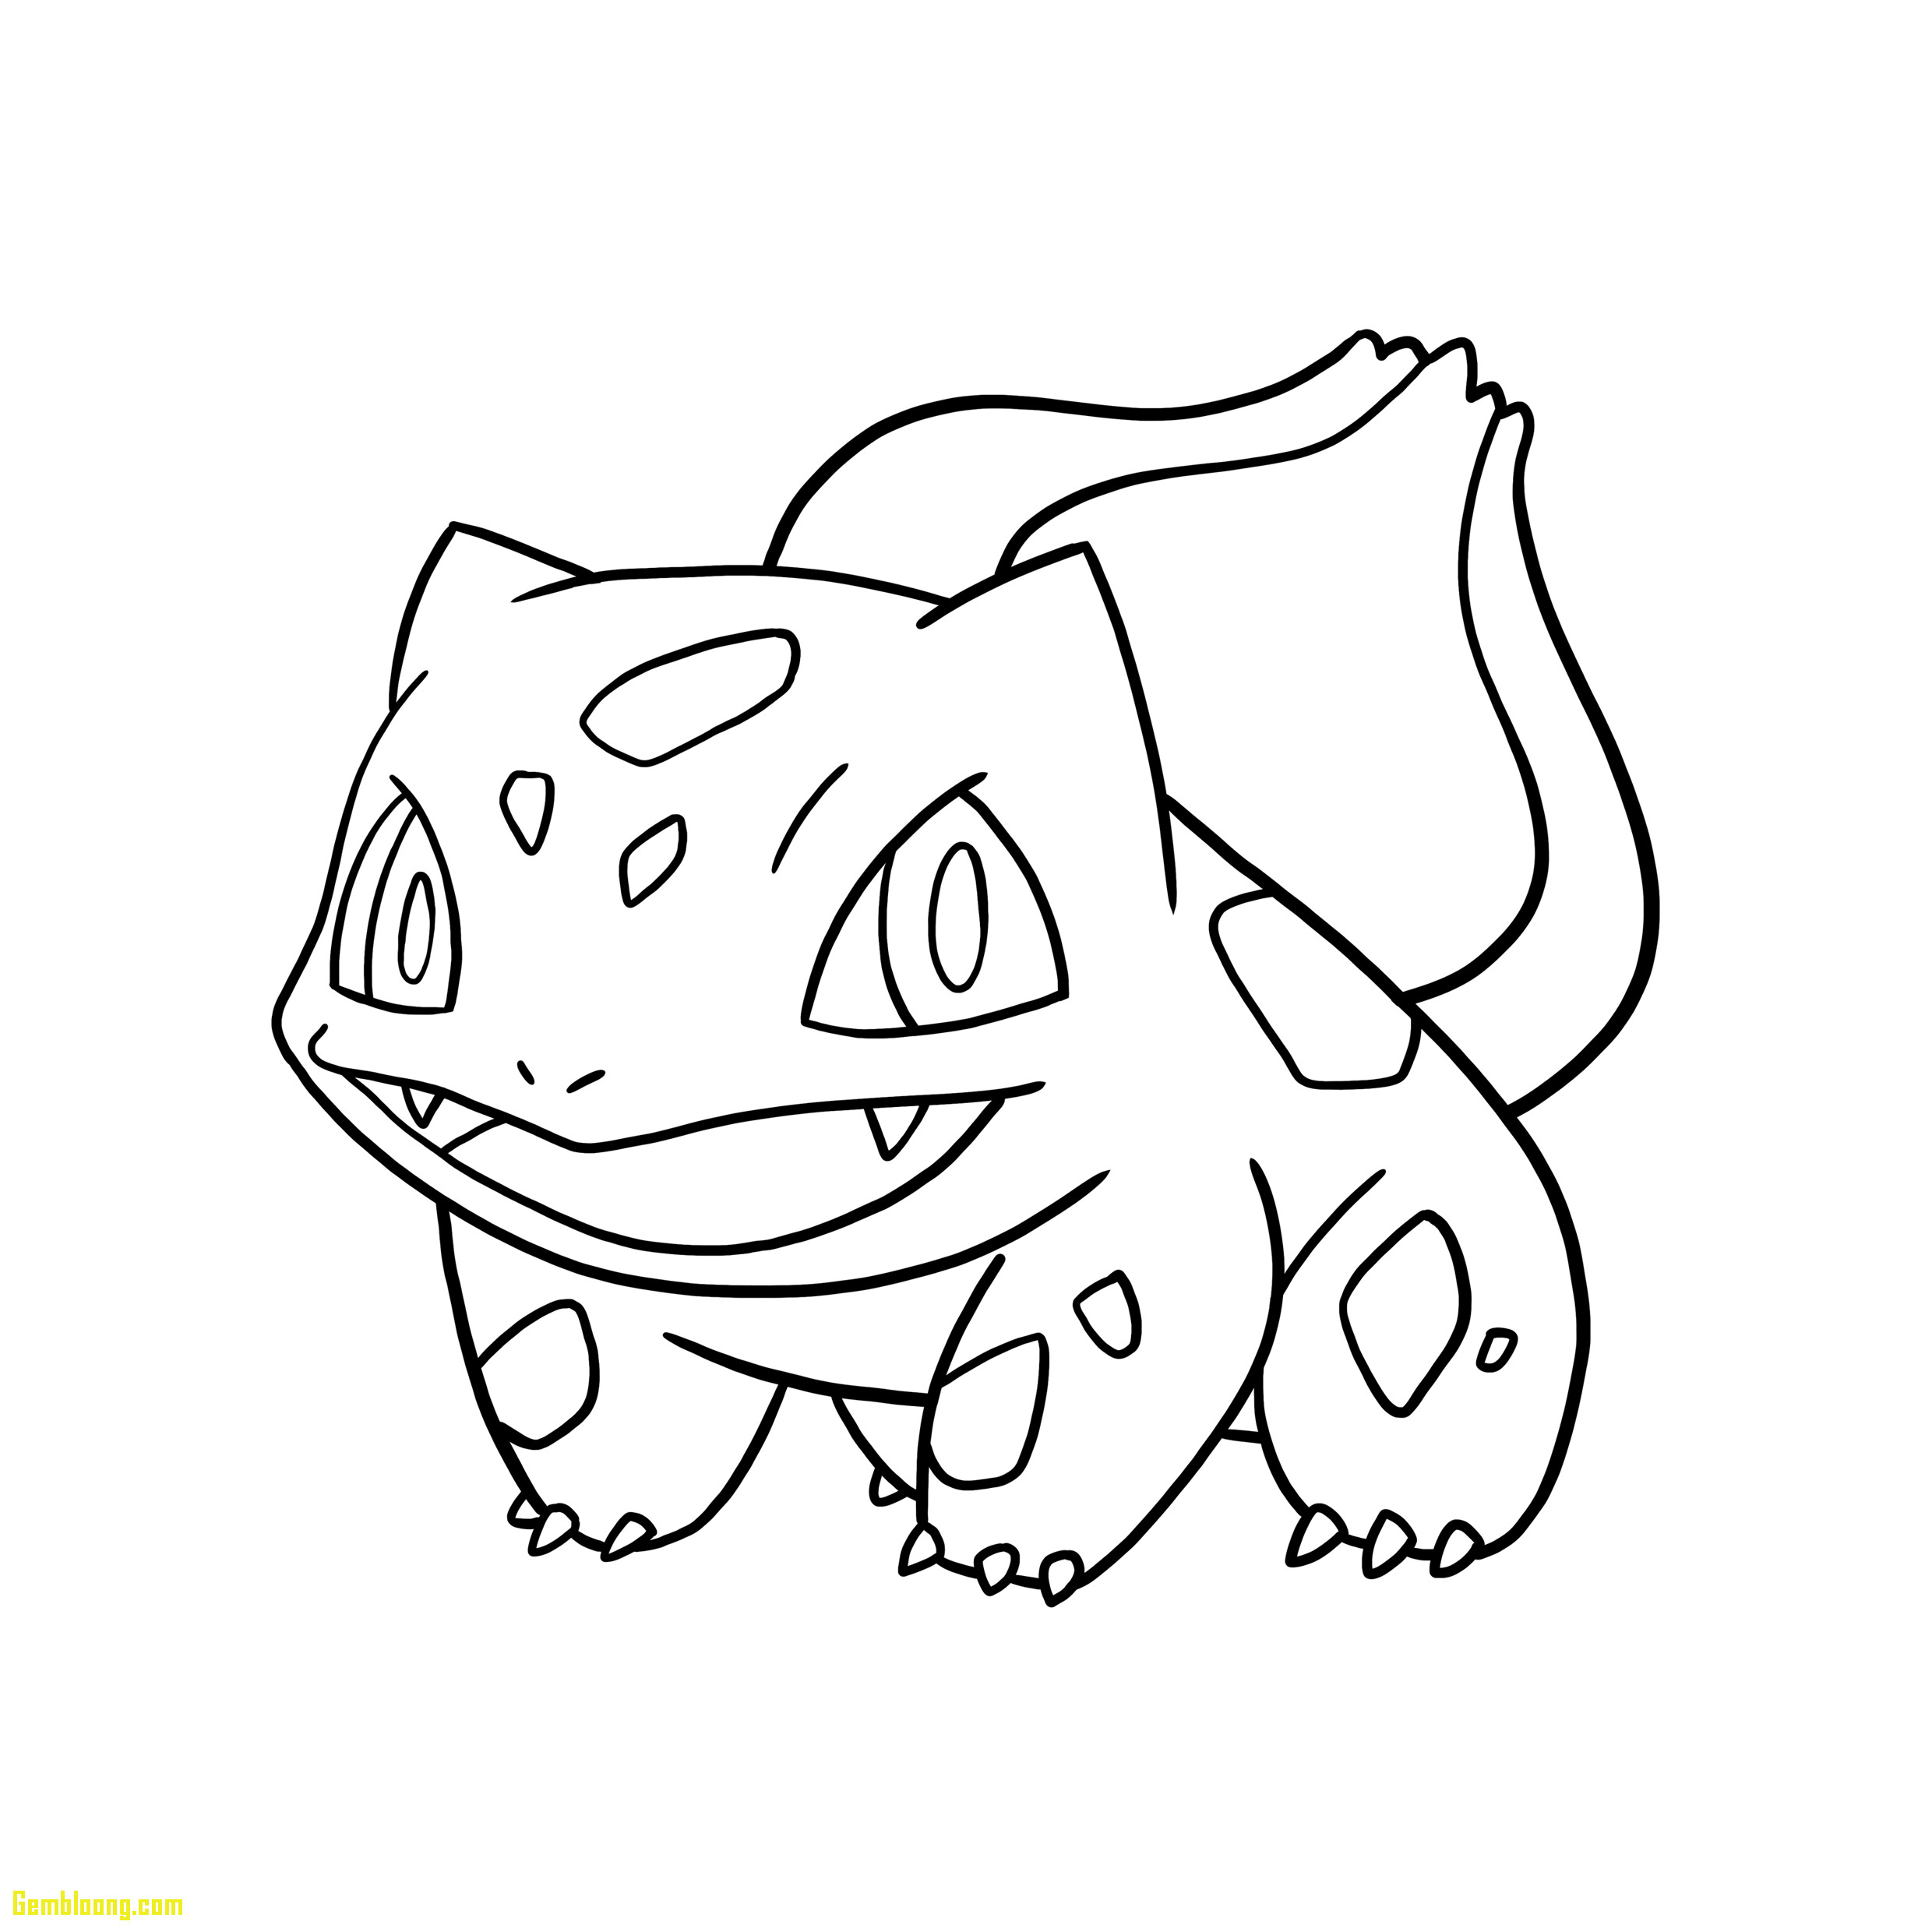 2480x2480 Togepi Coloring Pages